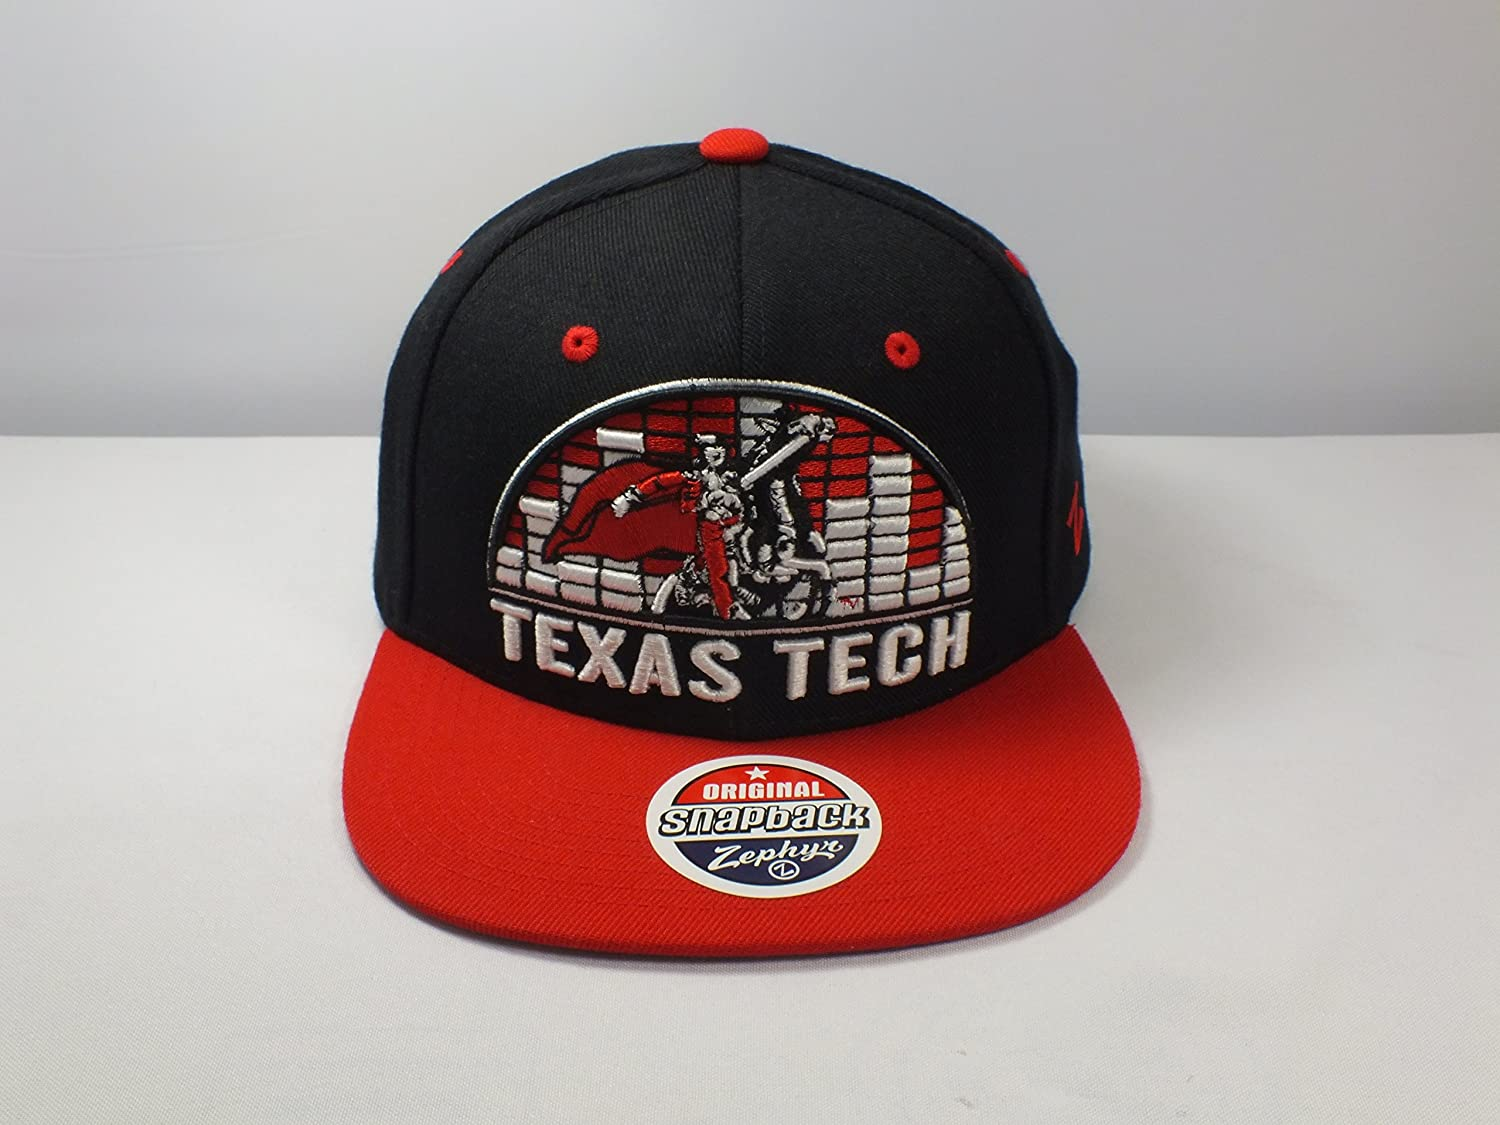 quality design 762c1 b5ac1 Amazon.com   Texas Tech NCAA Vintage Snapback Cap Adult Size   Sports    Outdoors